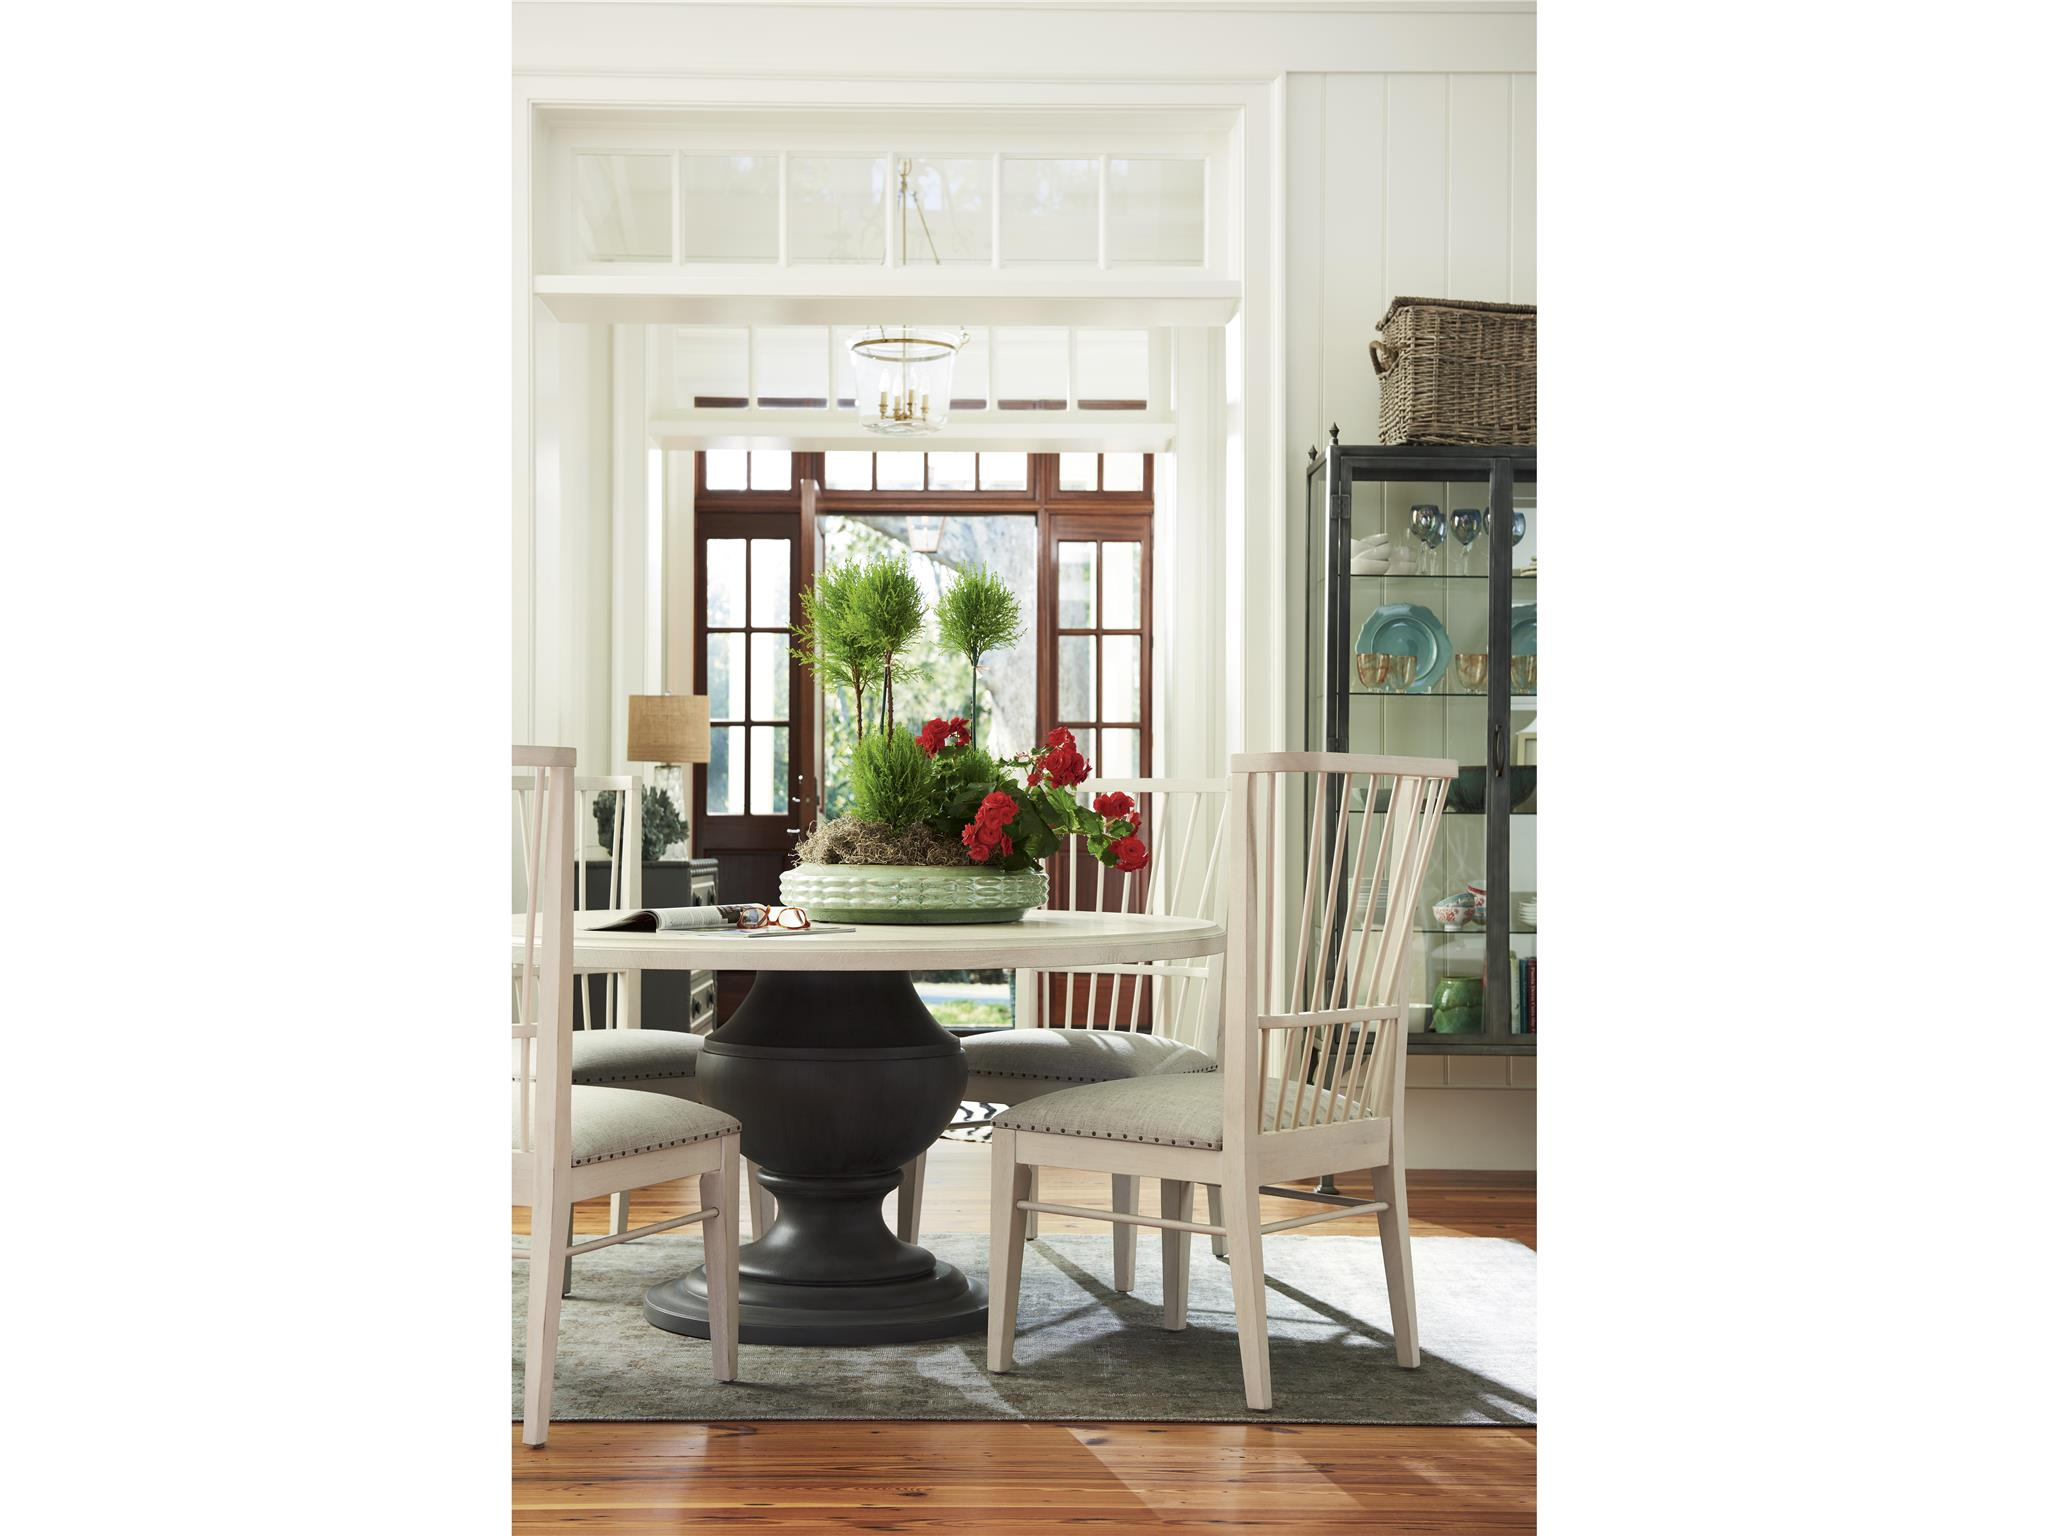 Universal Furniture Cottage Paula Deen Home Round